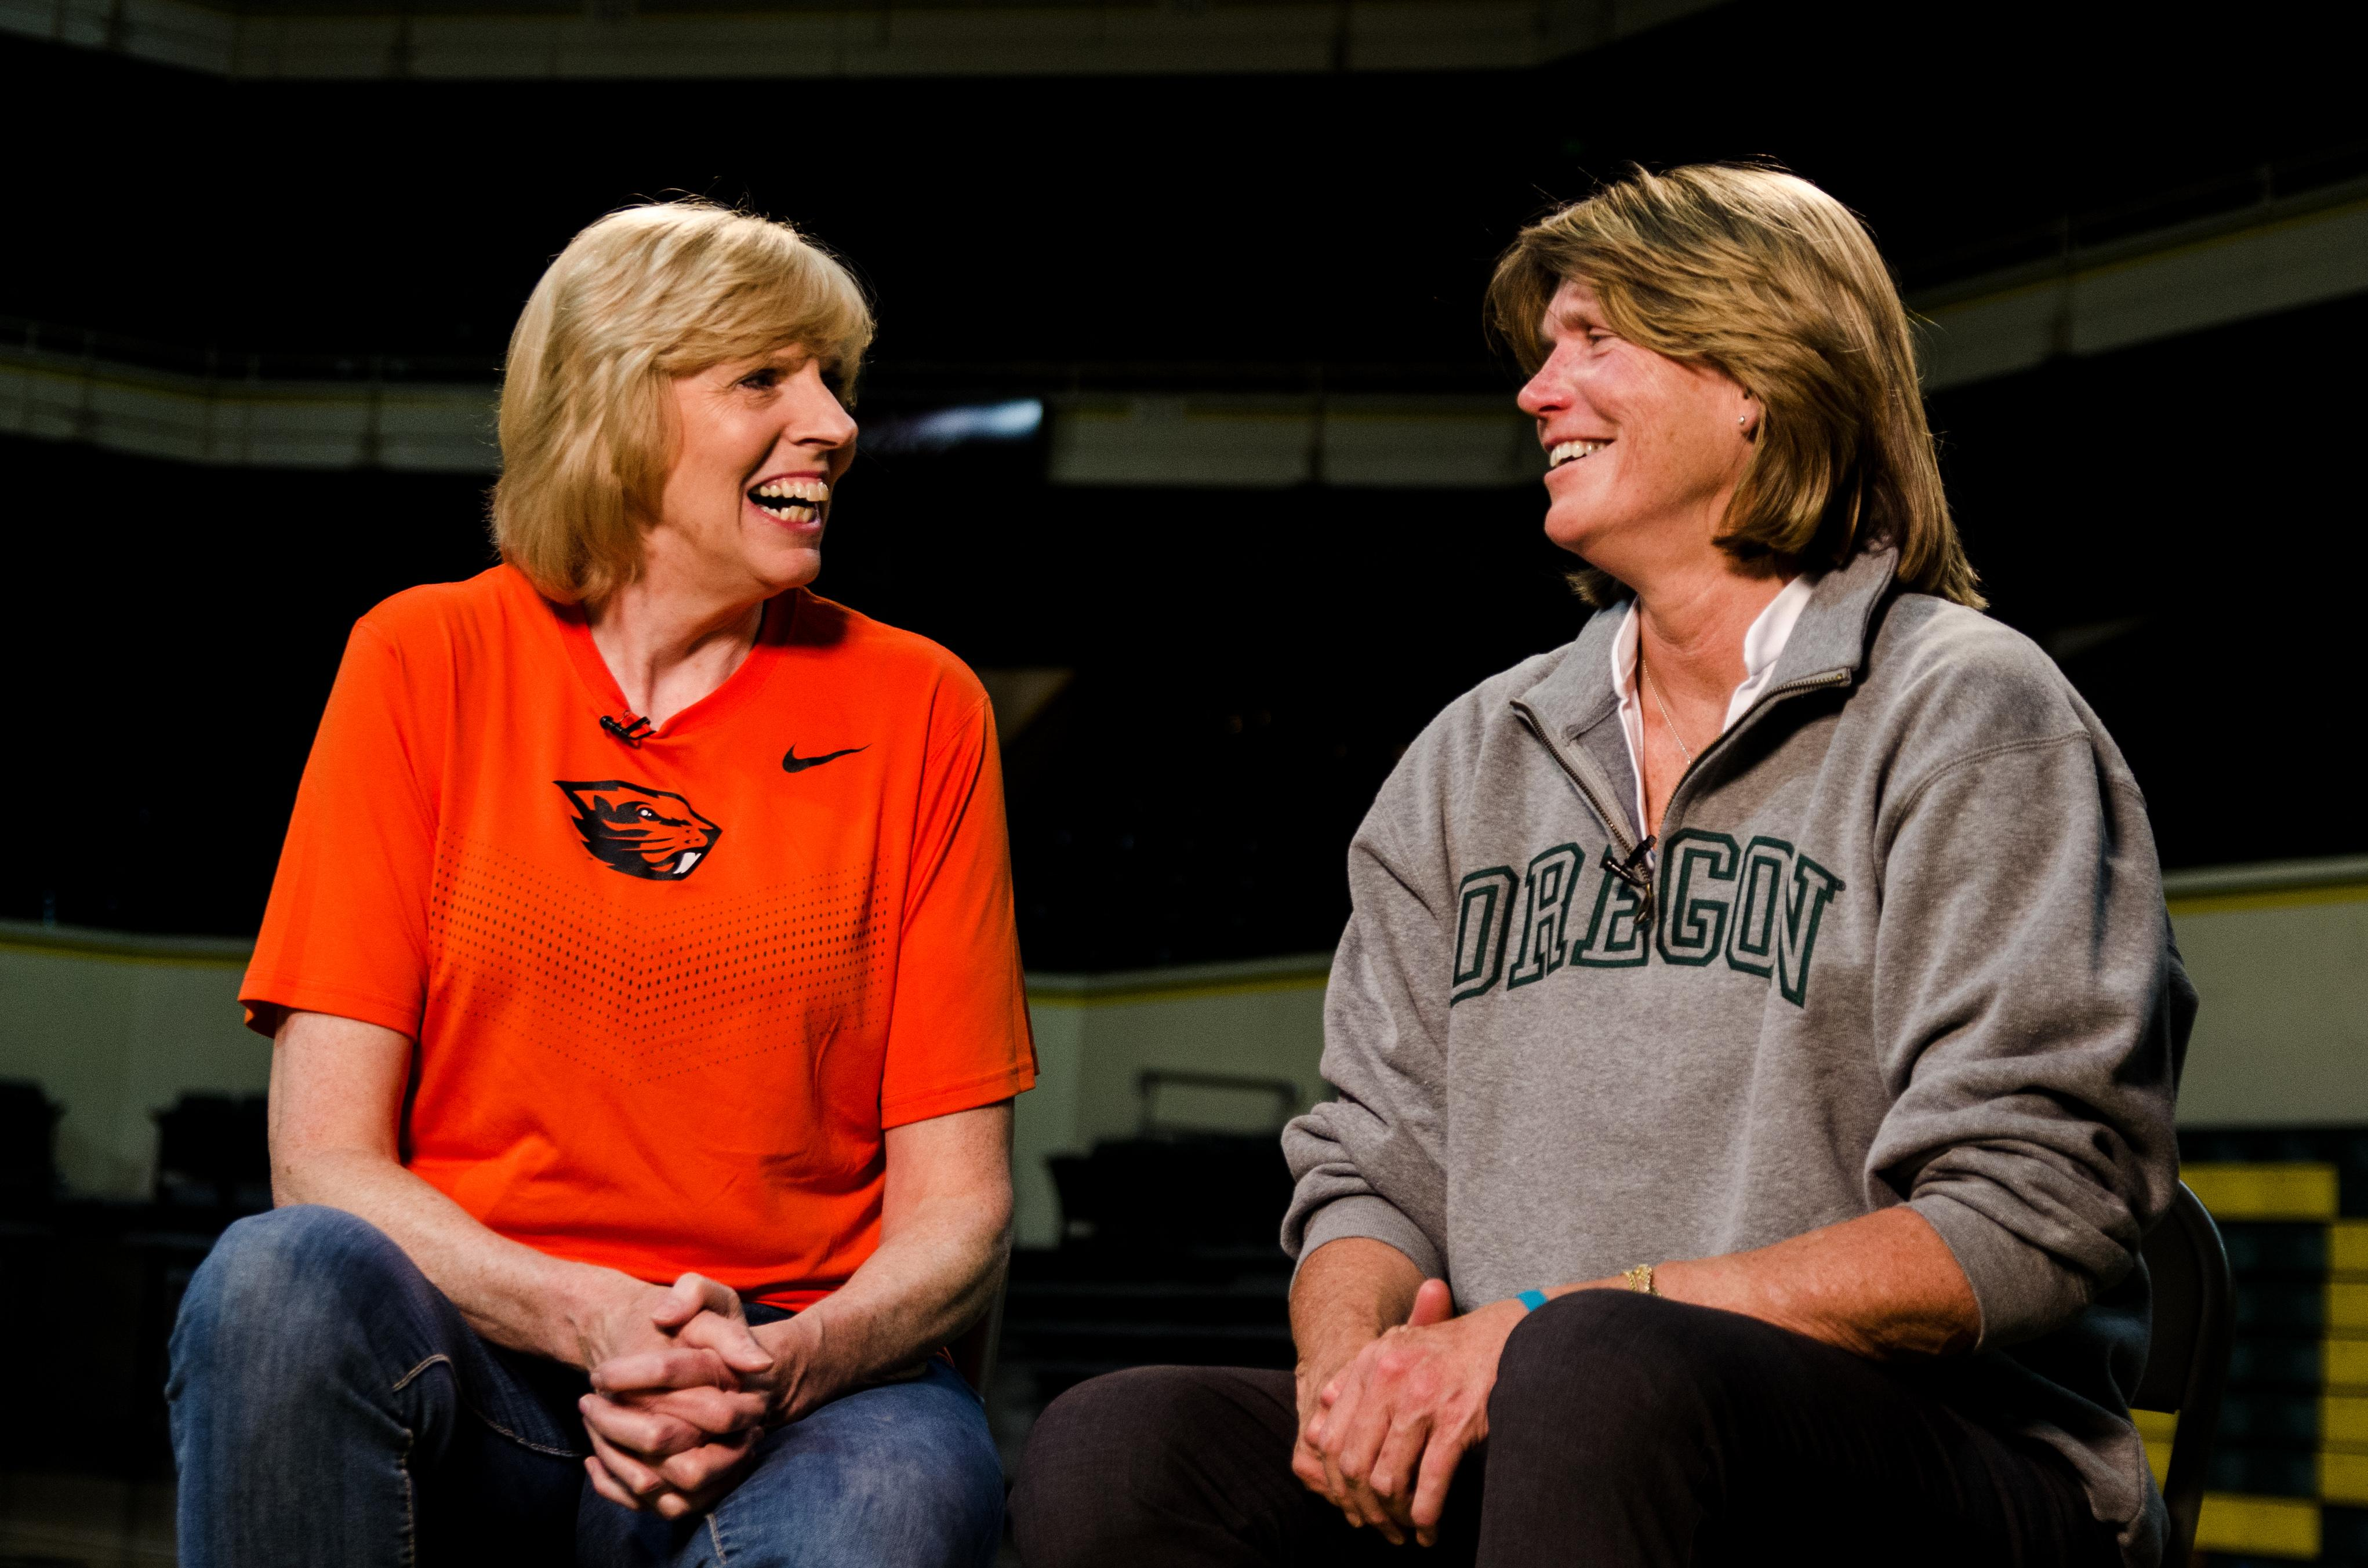 Although they didn't realize it at the time, the rivalry between Oregon State's Carol Menken-Schaudt and University of Oregon's Bev Smith became the pillar that women's basketball was built on in the northwest. Photo by Matt Scotton